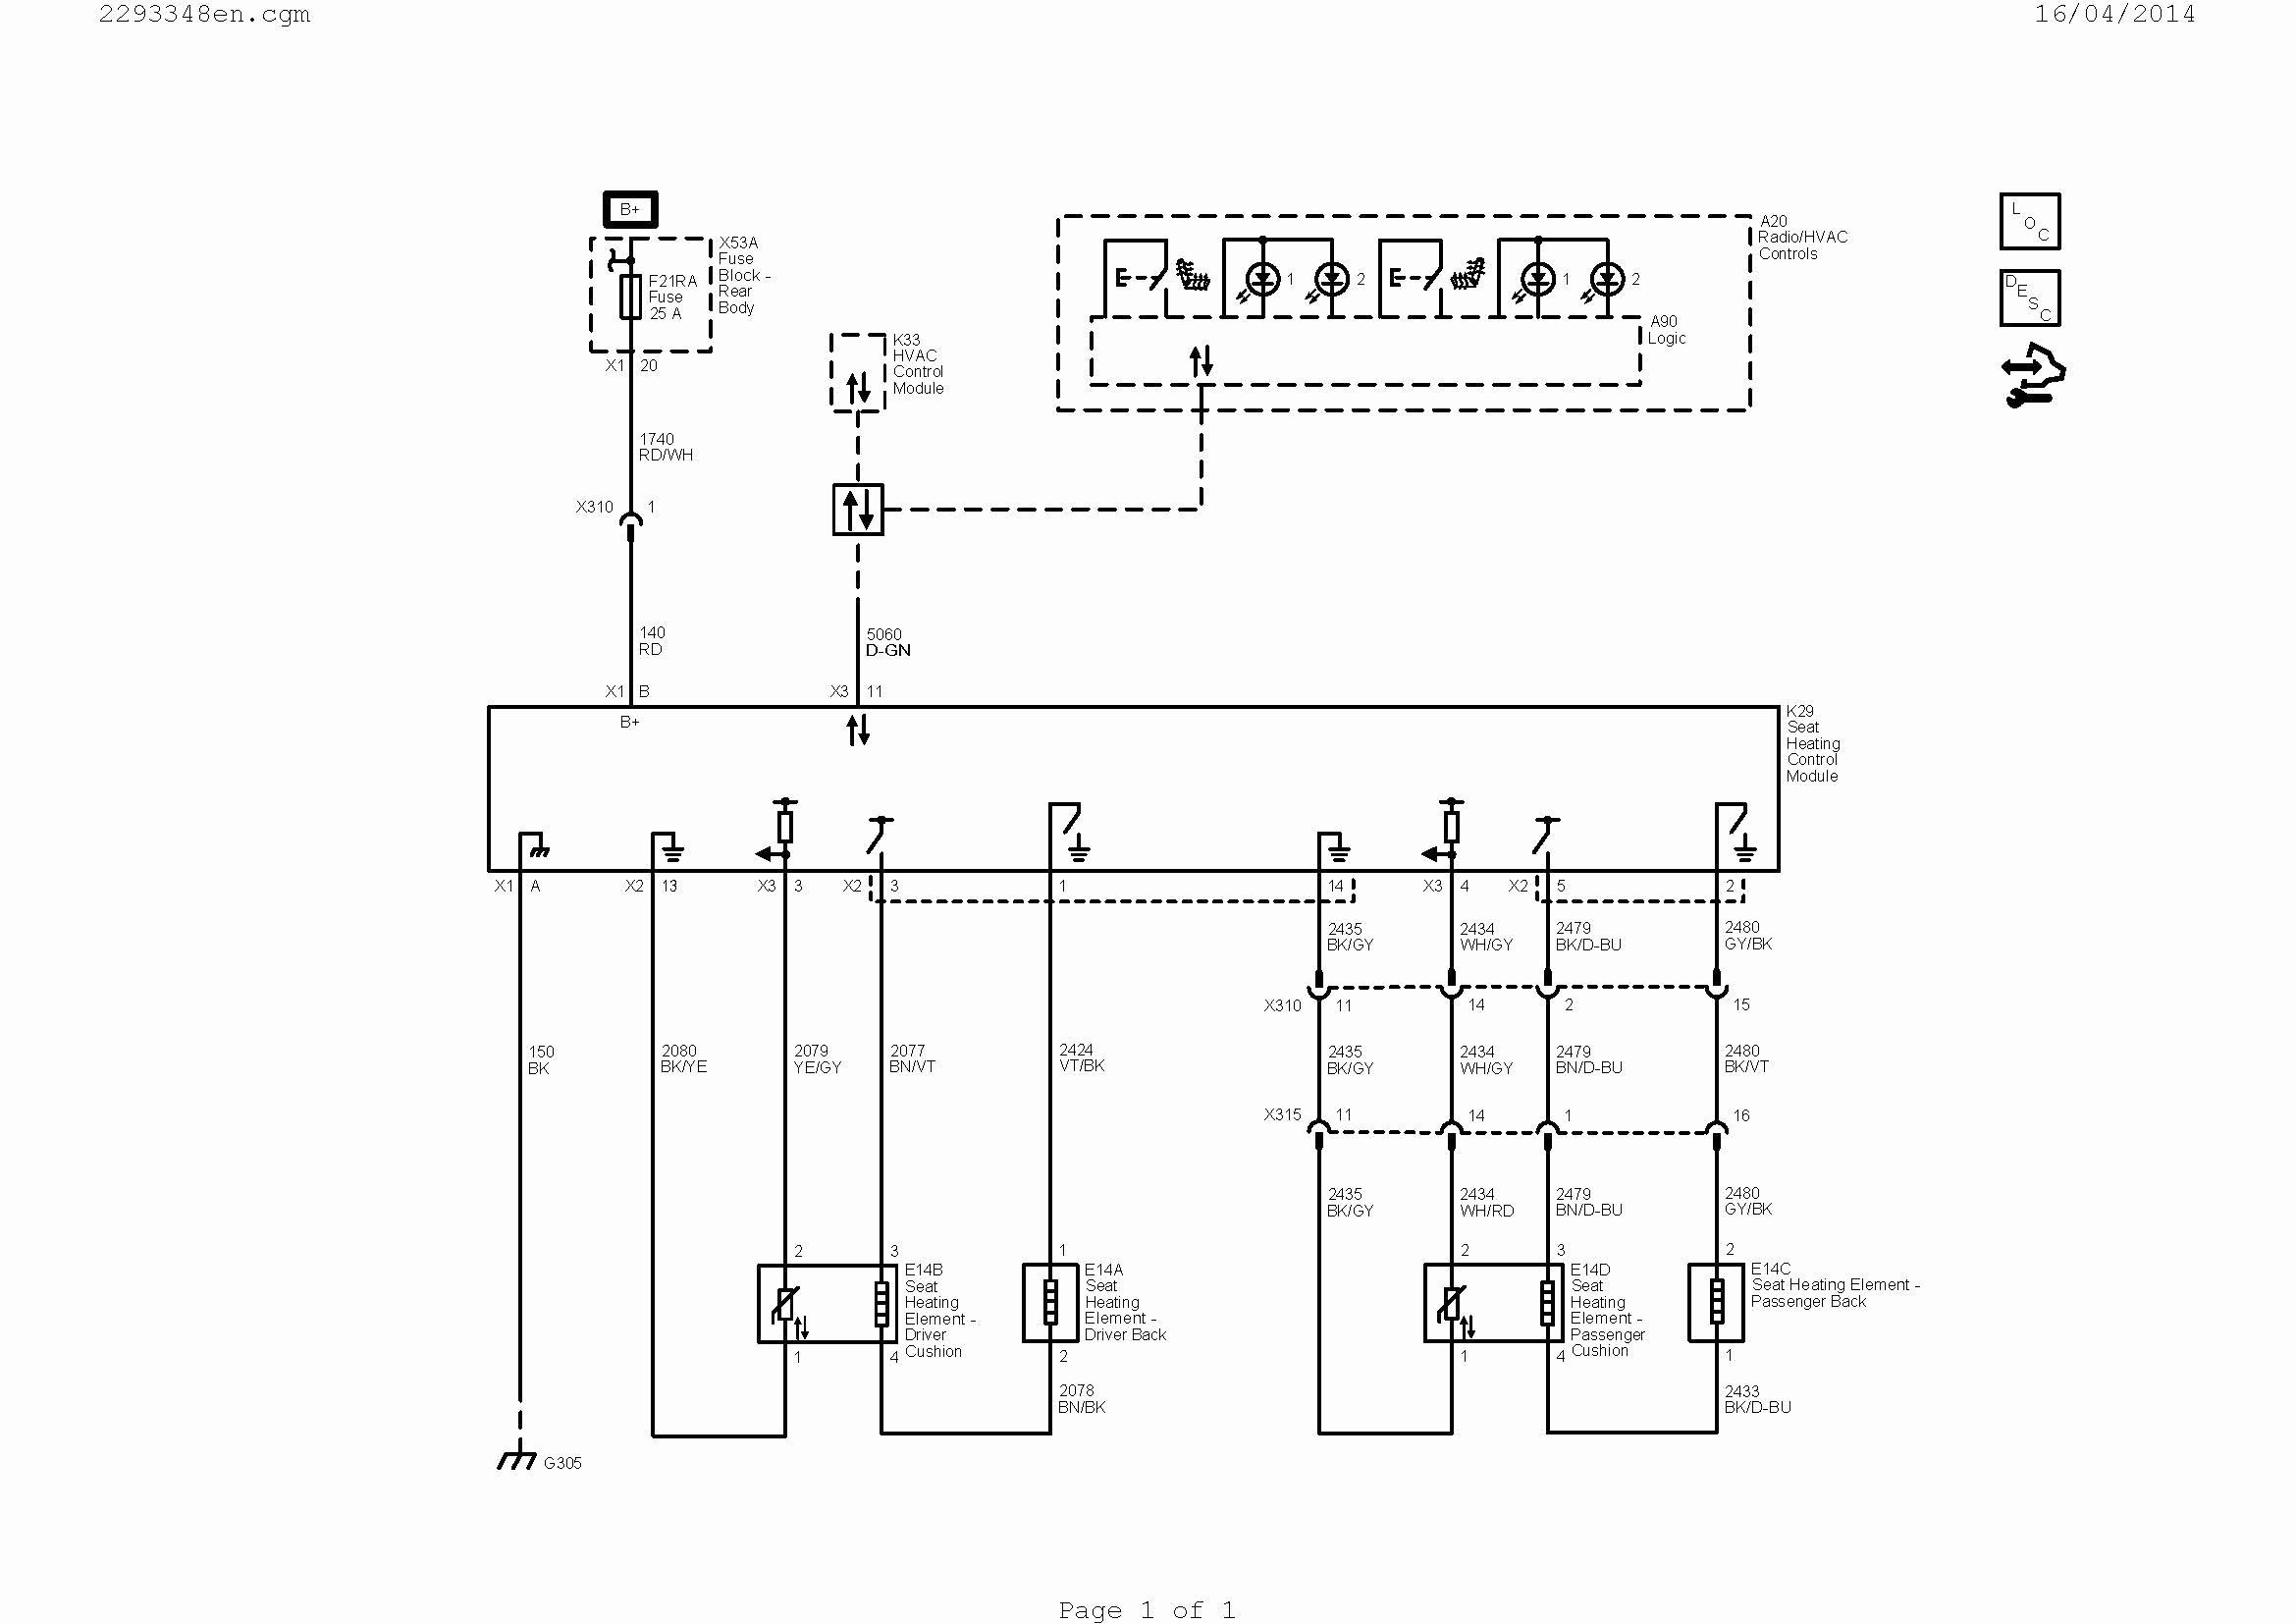 Truck and Trailer Wiring Diagram 60 Lovely Wiring Diagram for Gmc Trailer Plug Of Truck and Trailer Wiring Diagram